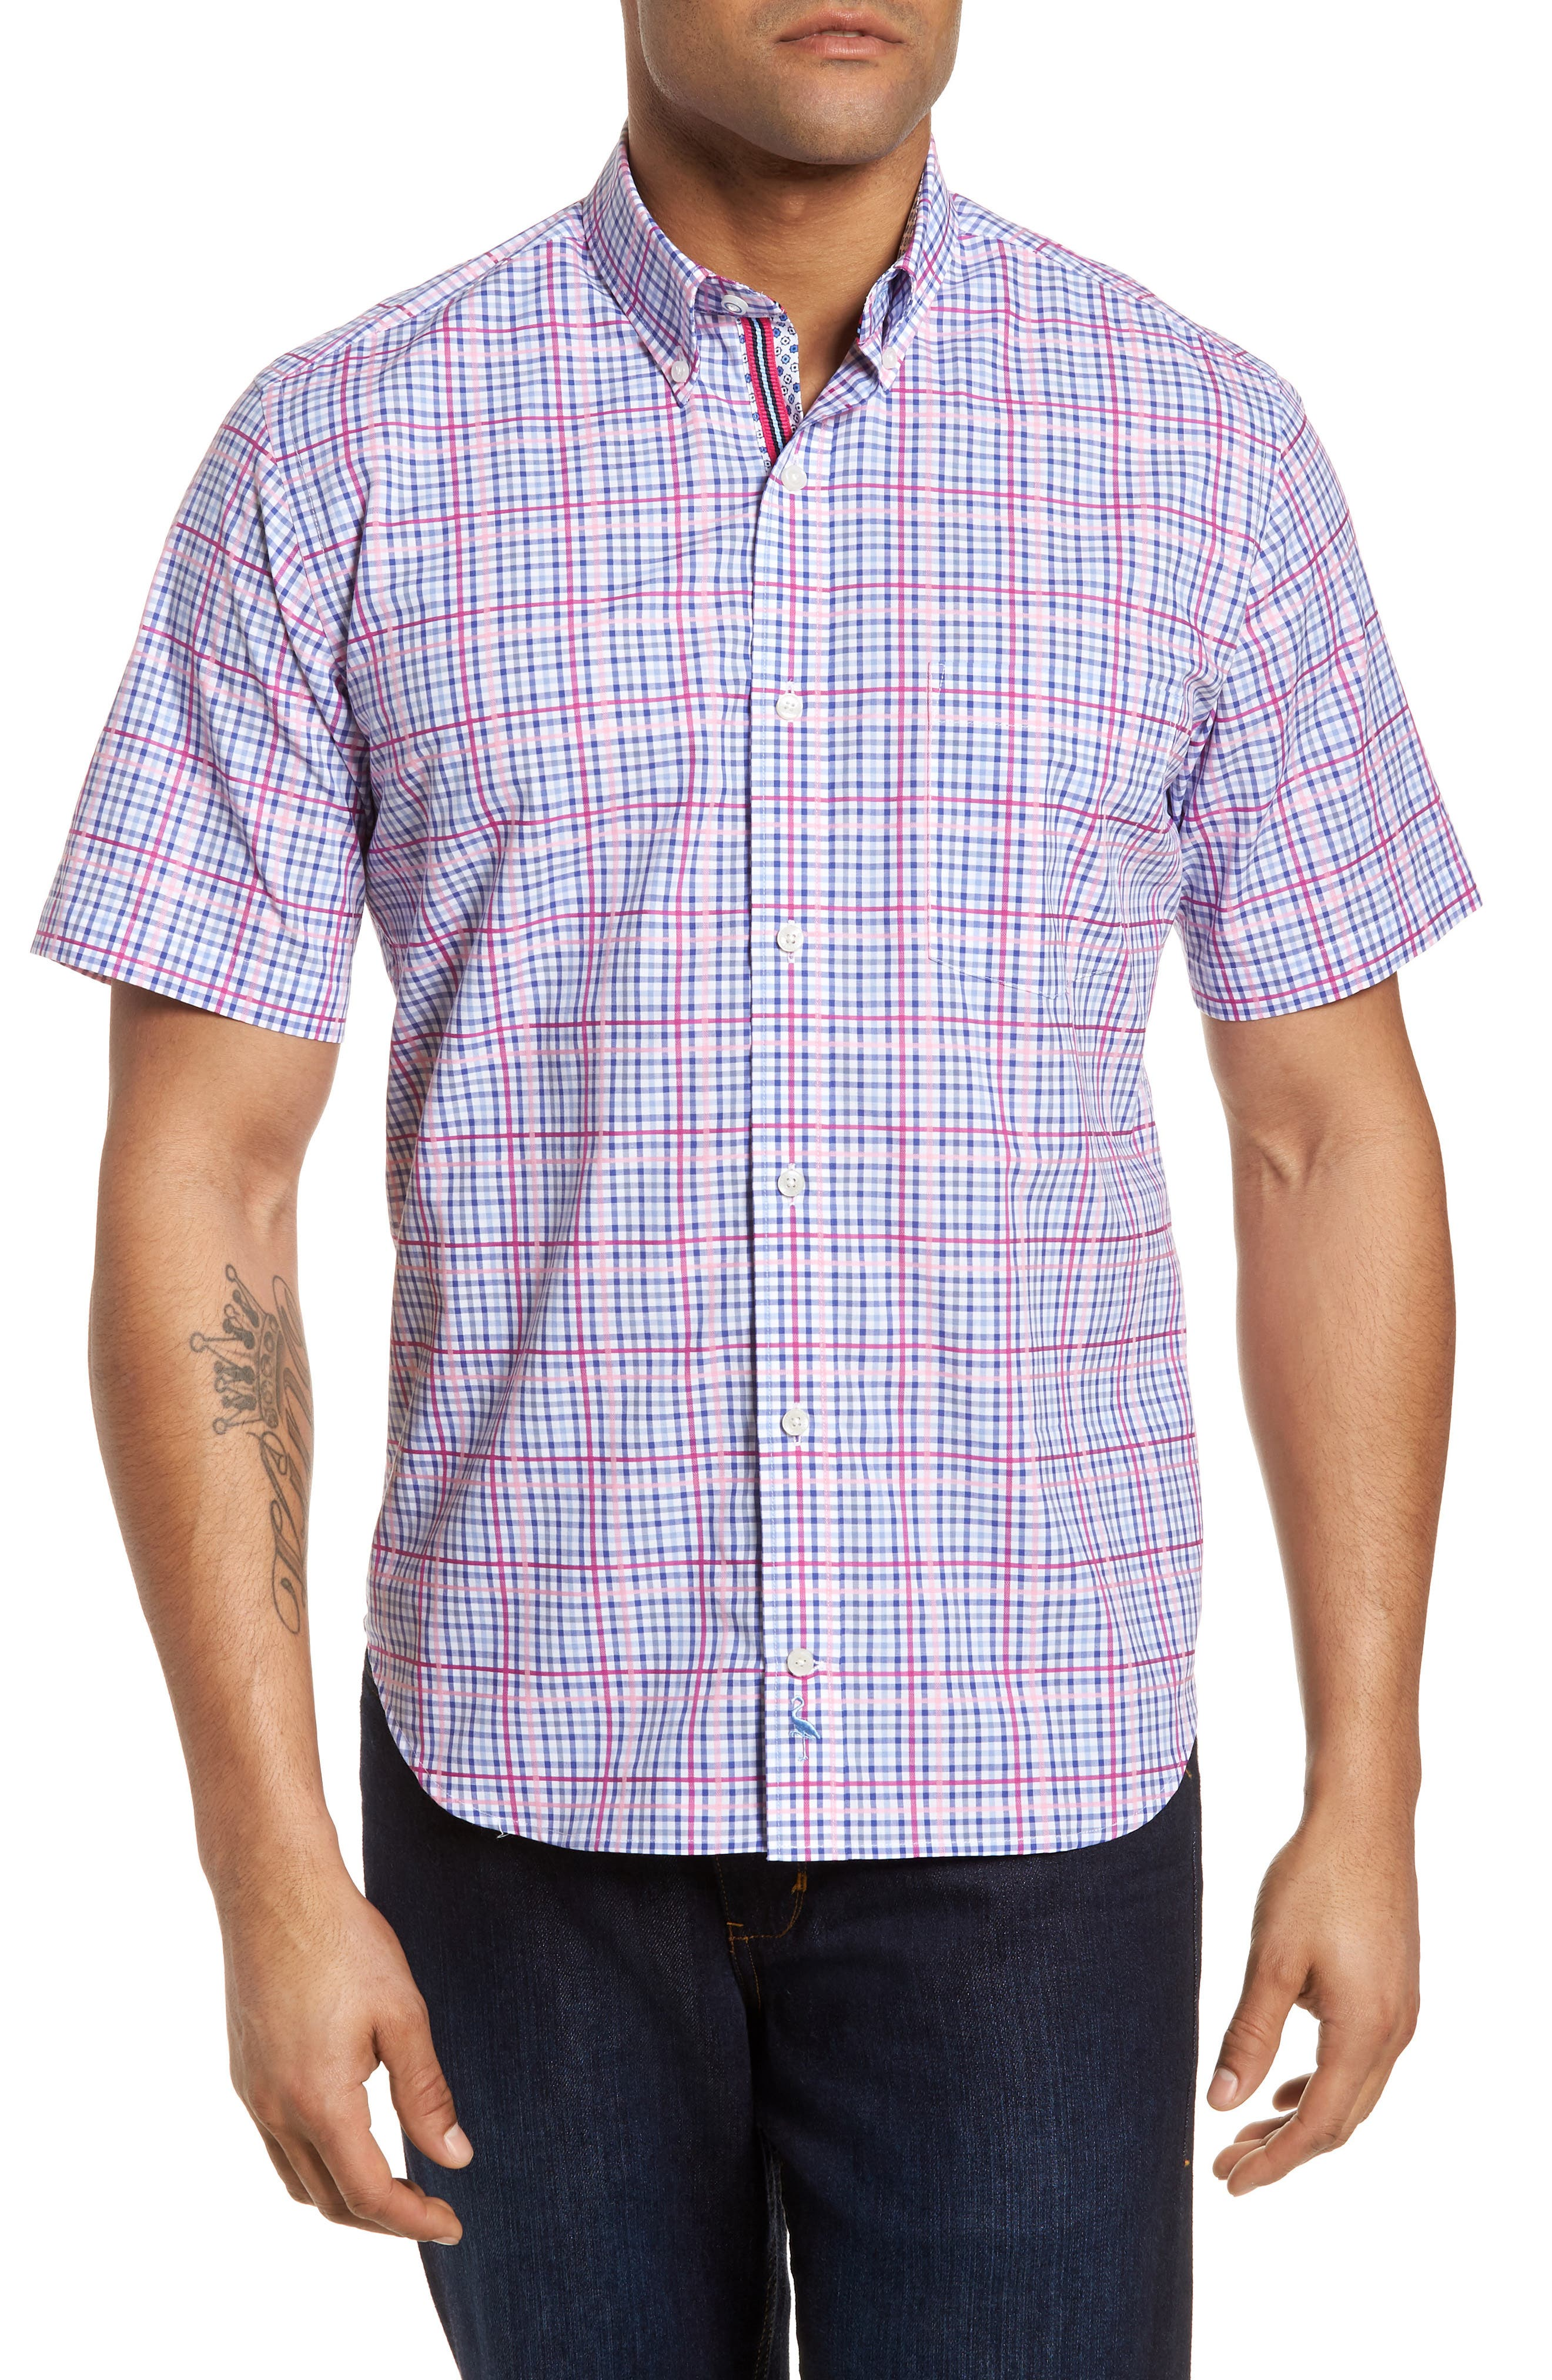 Ale Regular Fit Check Sport Shirt,                             Main thumbnail 1, color,                             650